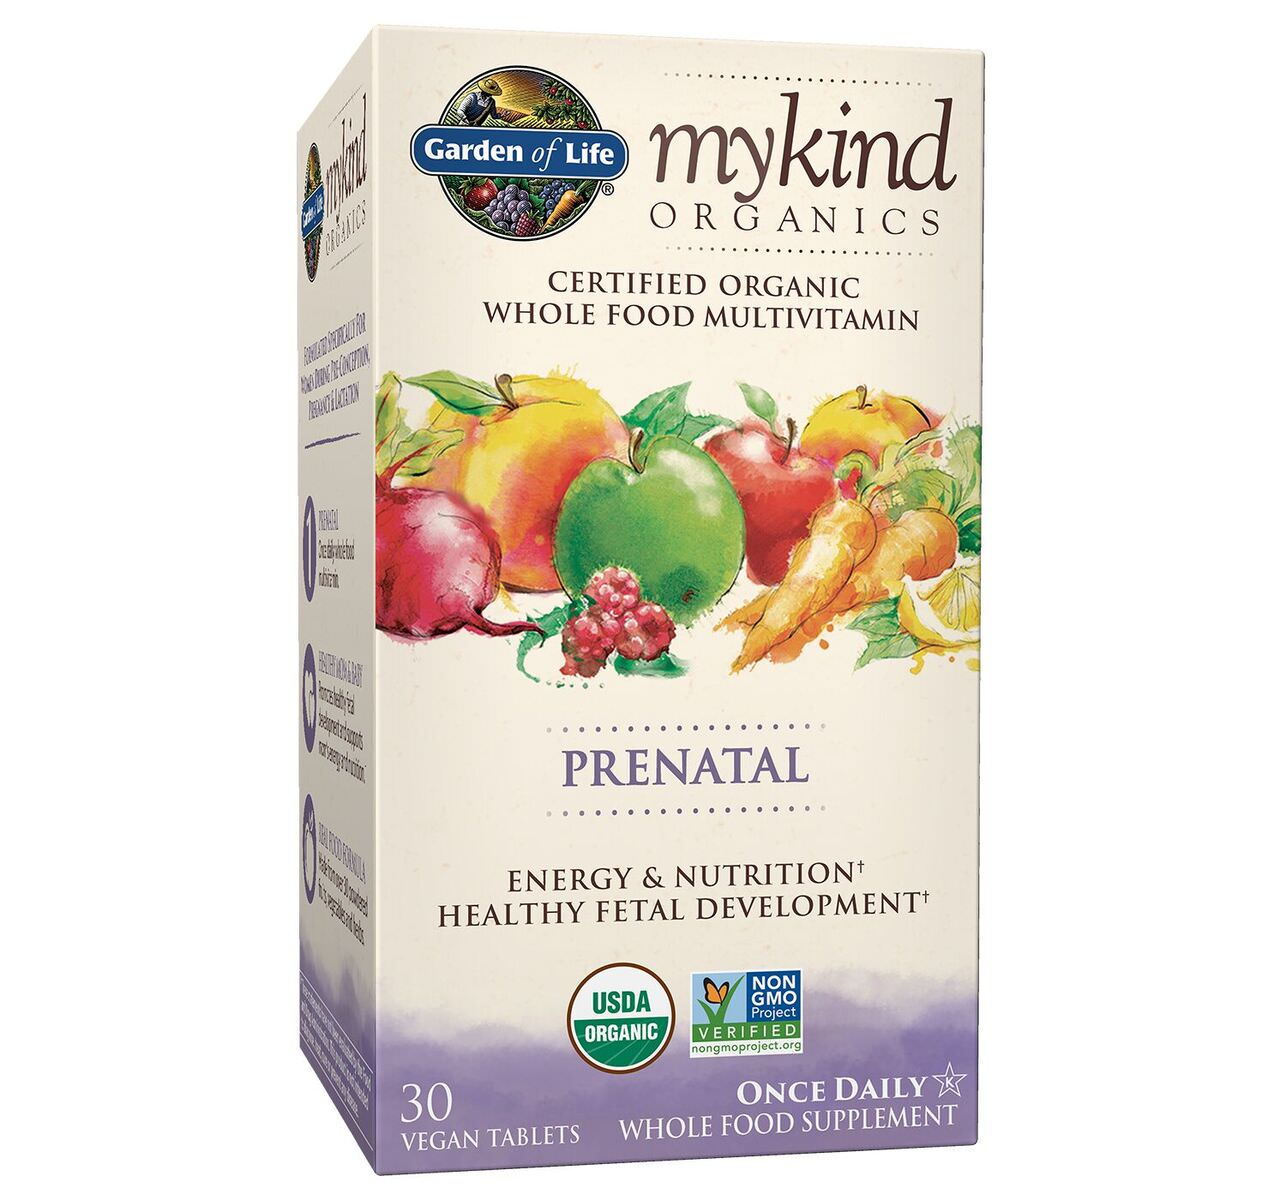 Garden of Life mykind Organics Prenatal One a Day Multivitamin, 30 Ct